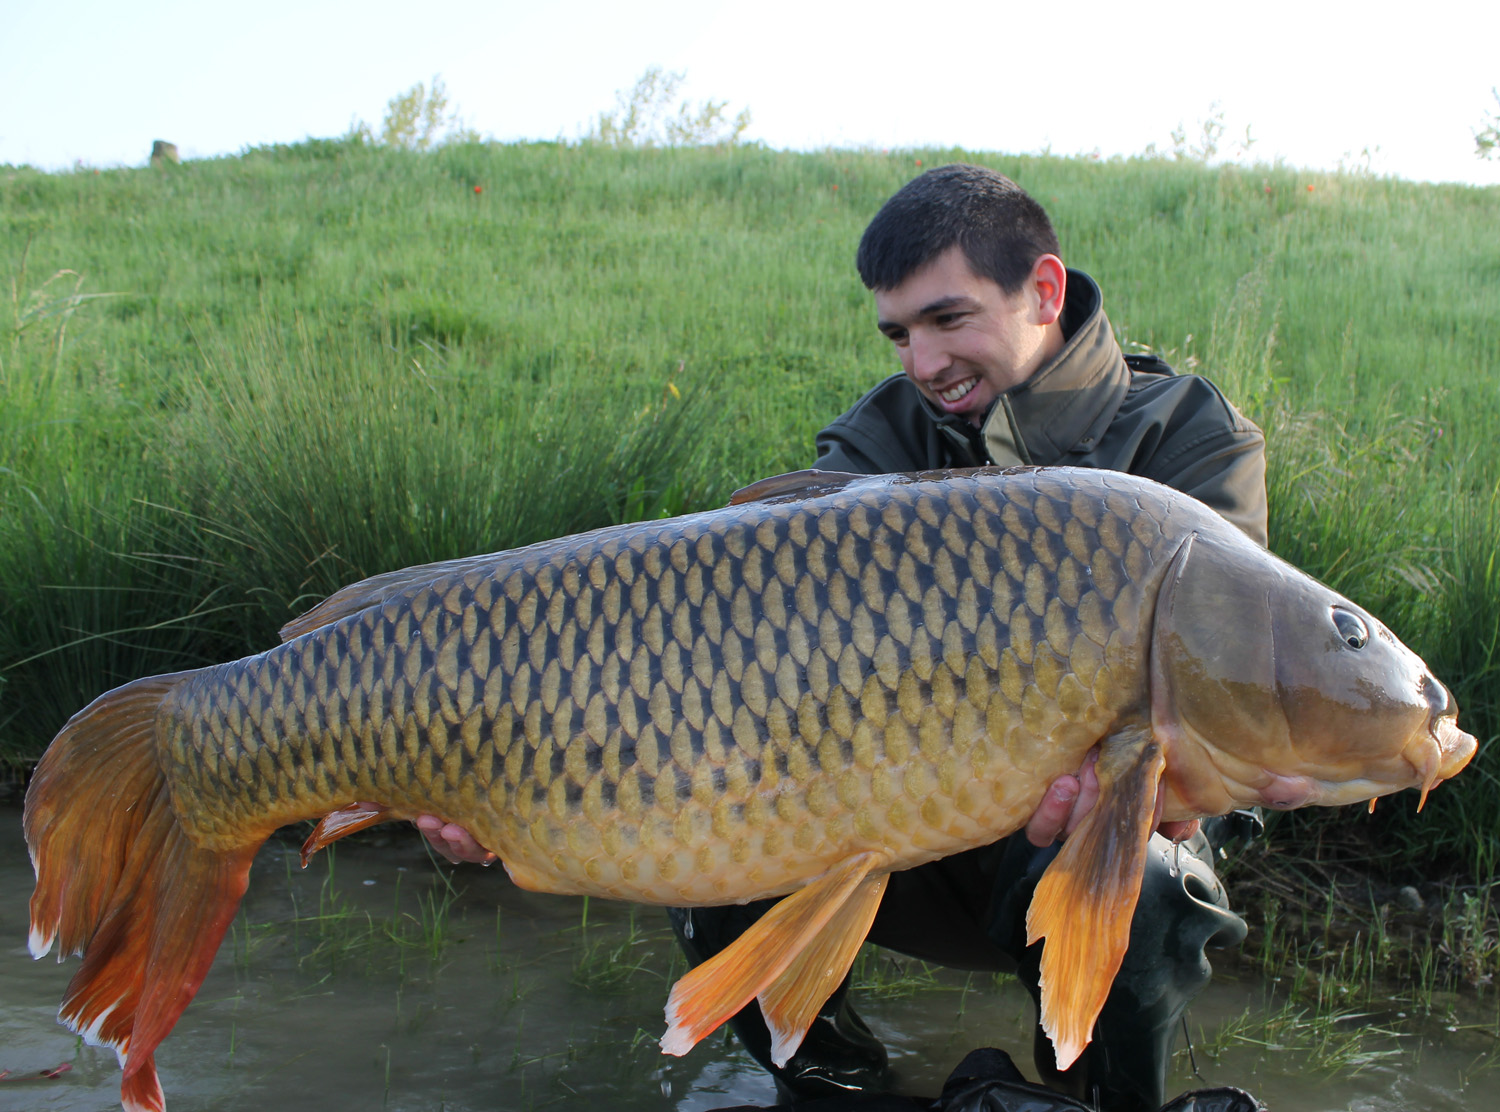 http://www.starbaits.com/fichiers/images/team/gallery/DUCERE_Cedric/6-DUCERE-CEDRIC.JPG